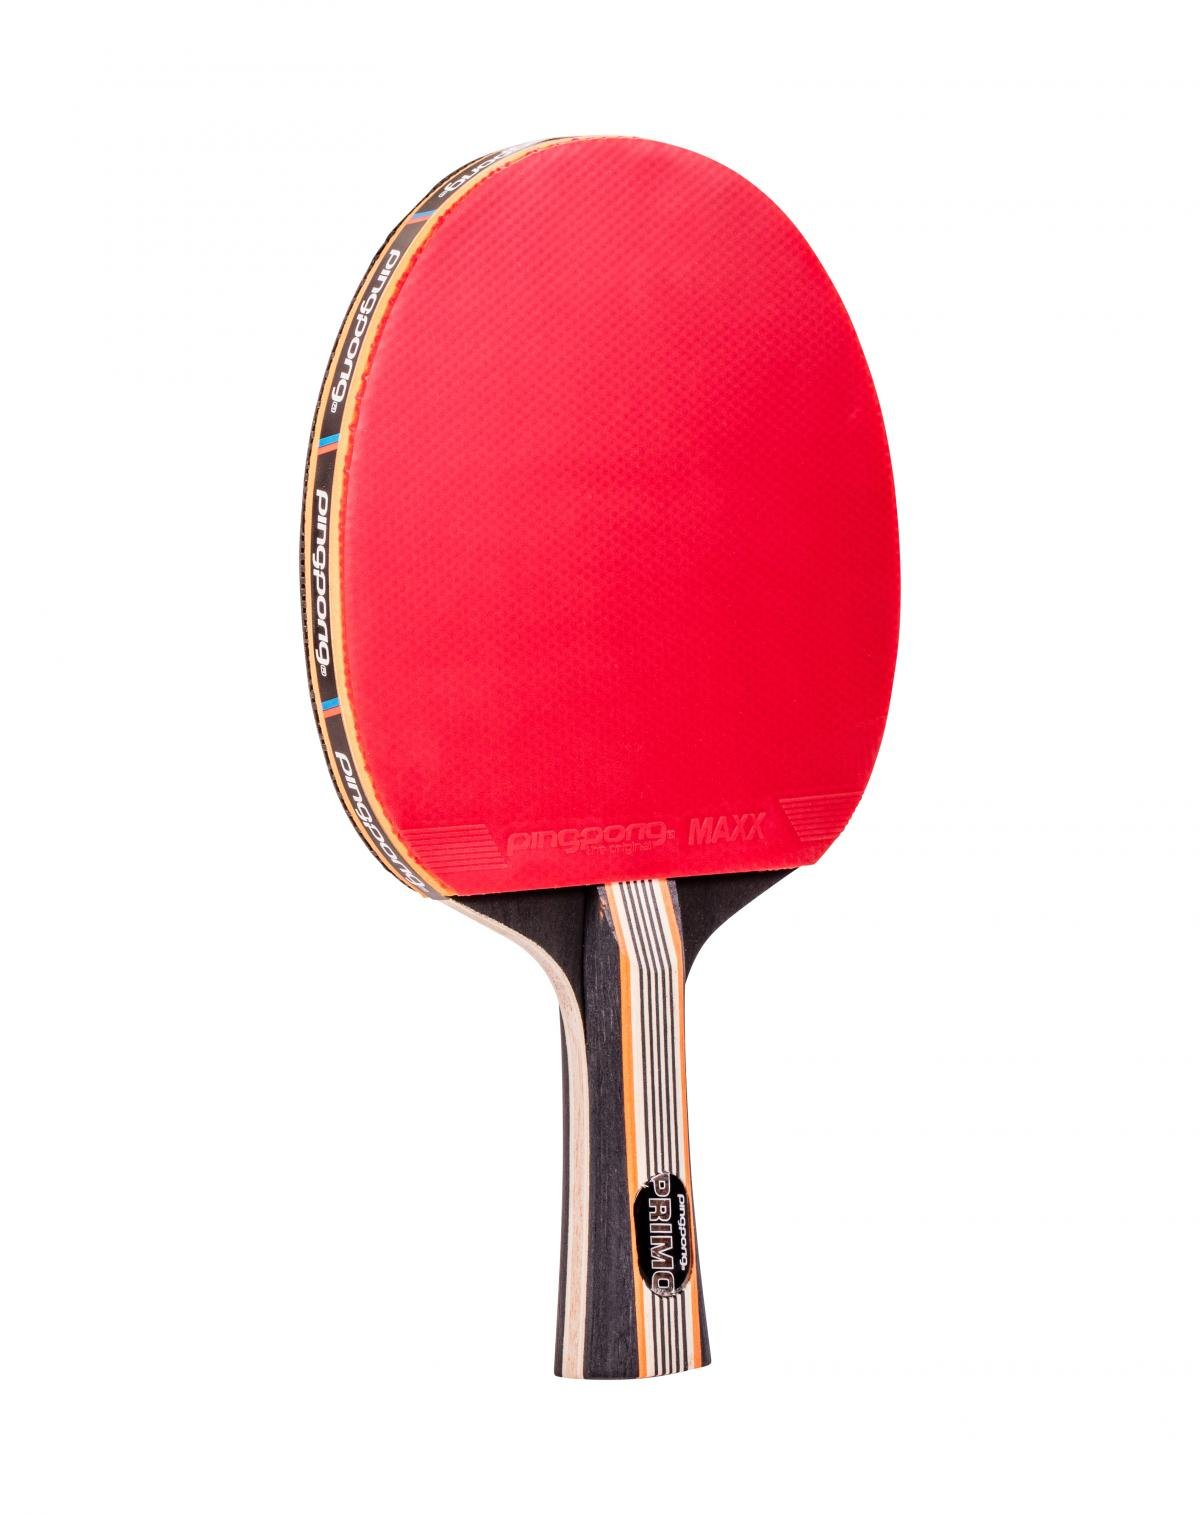 Caleson Professional Ebony Wood Table Tennis Blade Including Racket Bag Pen Hold Grip Buy Online In Malta Caleson Products In Malta See Prices Reviews And Free Delivery Over 60 00 Desertcart